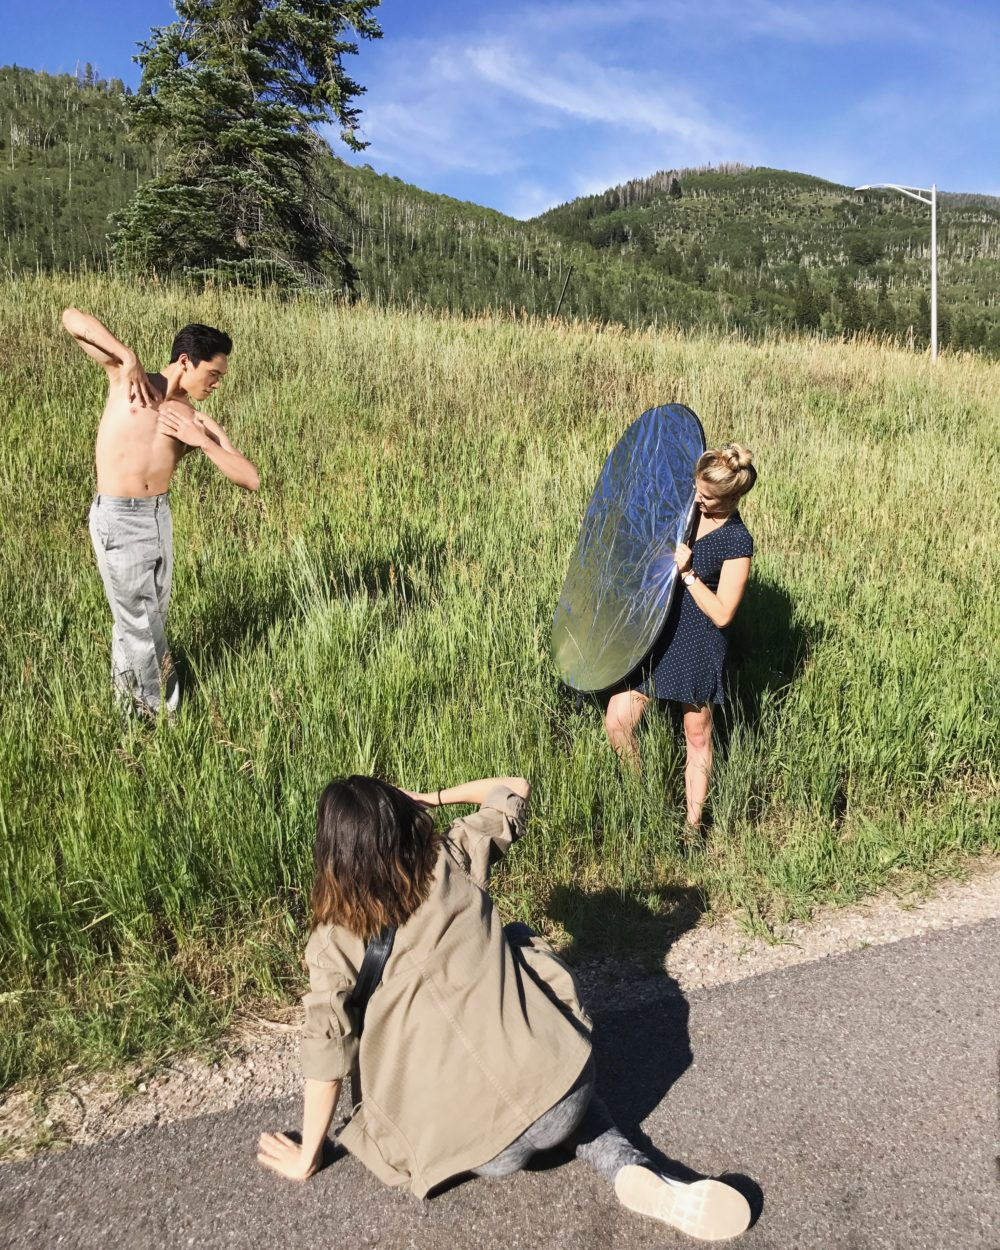 jeffrey Cirio (with photographer Erin Baiano and Kirsten Evans holding the reflector)